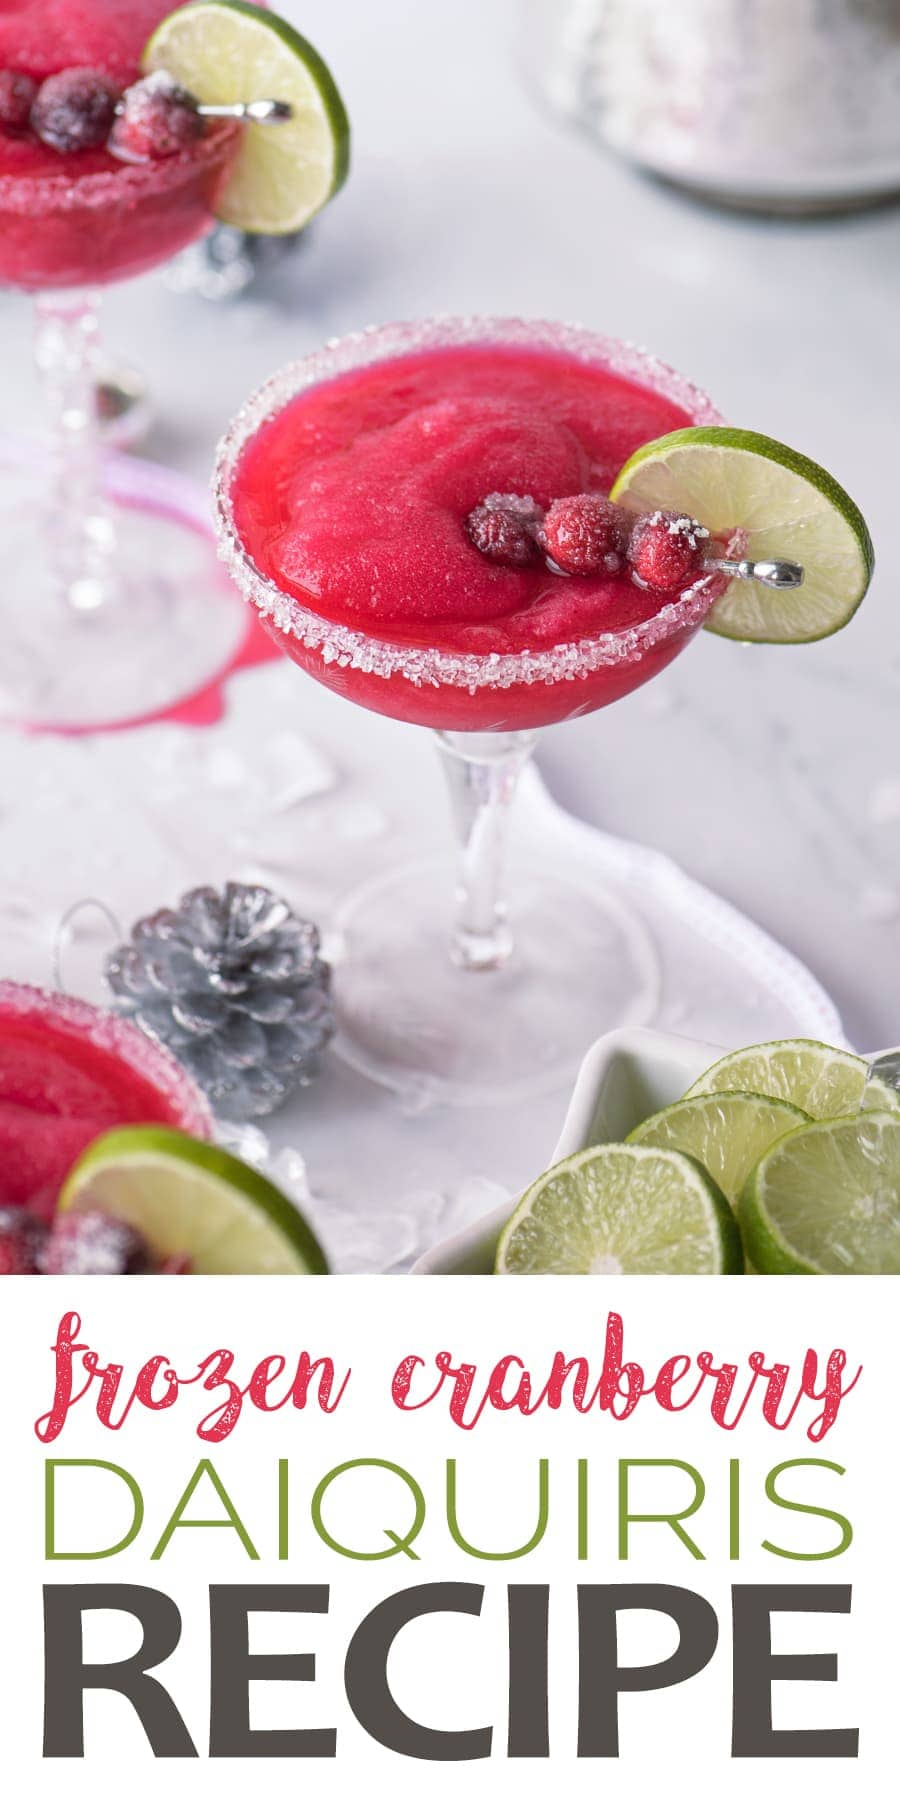 Baby it's cold inside with these frozen cranberry daiquiris! It's a festive holiday twist on the classic daiquiri that's sure to make your holiday a blast! #cocktails #cranberry #daiquiri #cocktailhour #christmascocktails #christmasparty